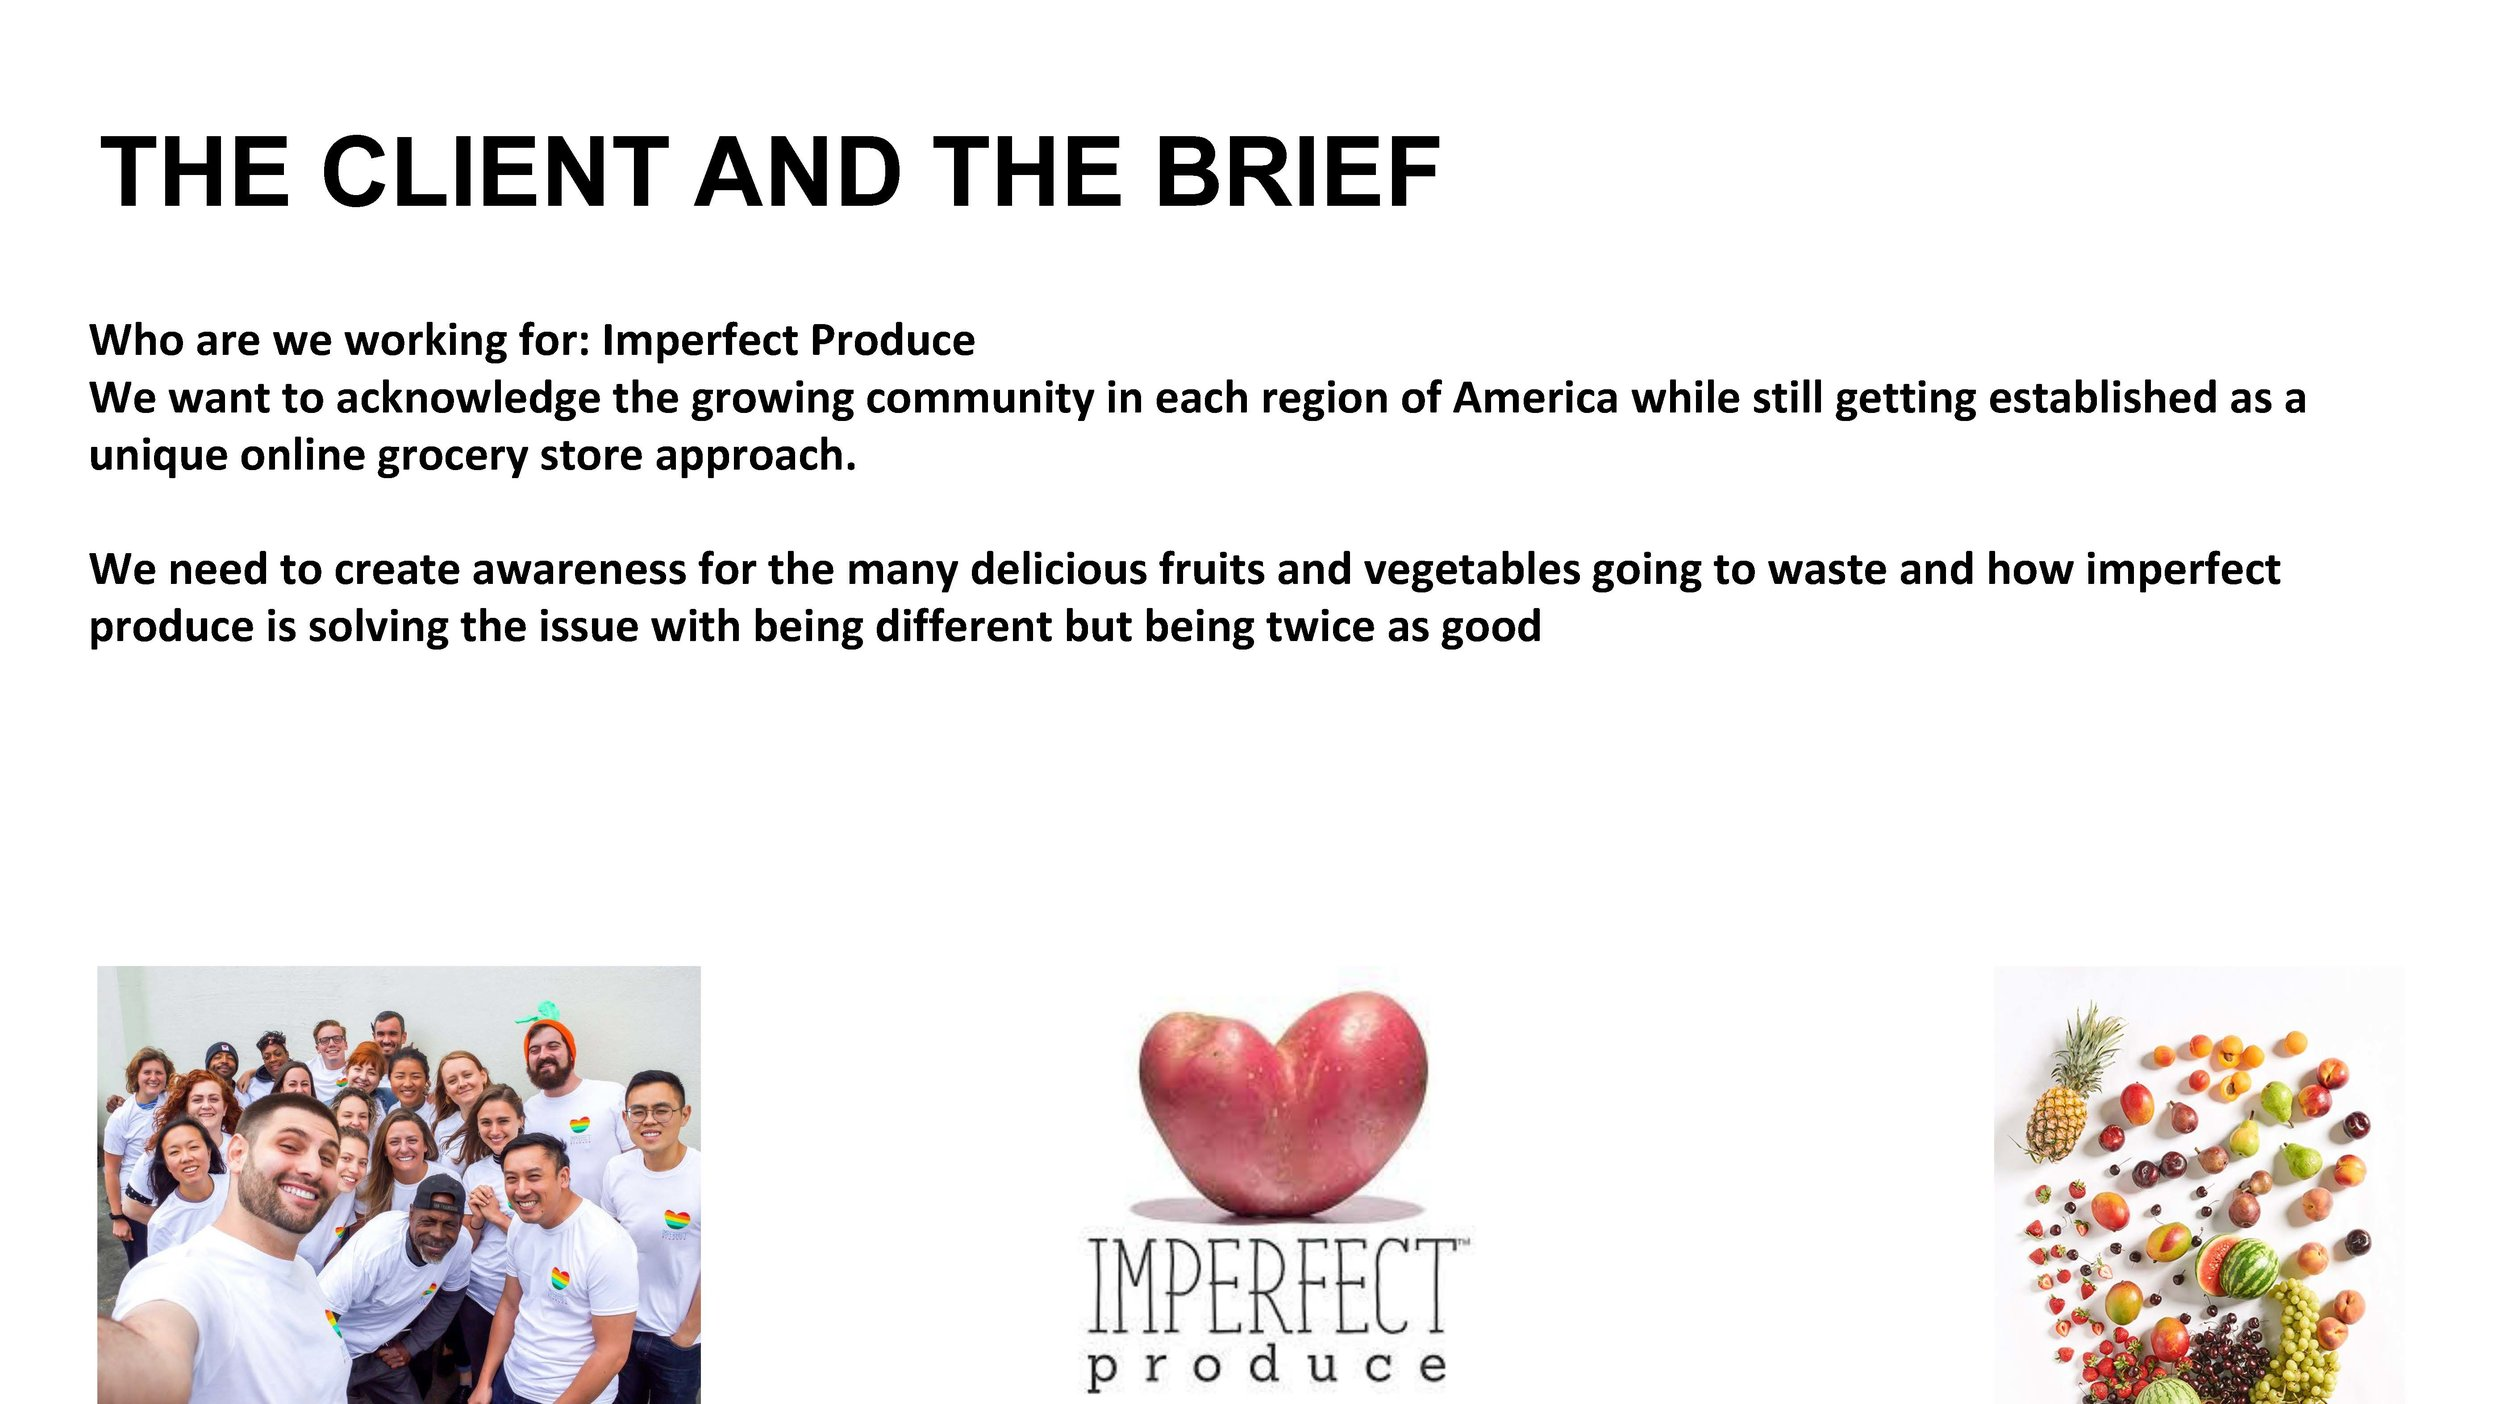 imperfect produce jpg_Page_02.jpg